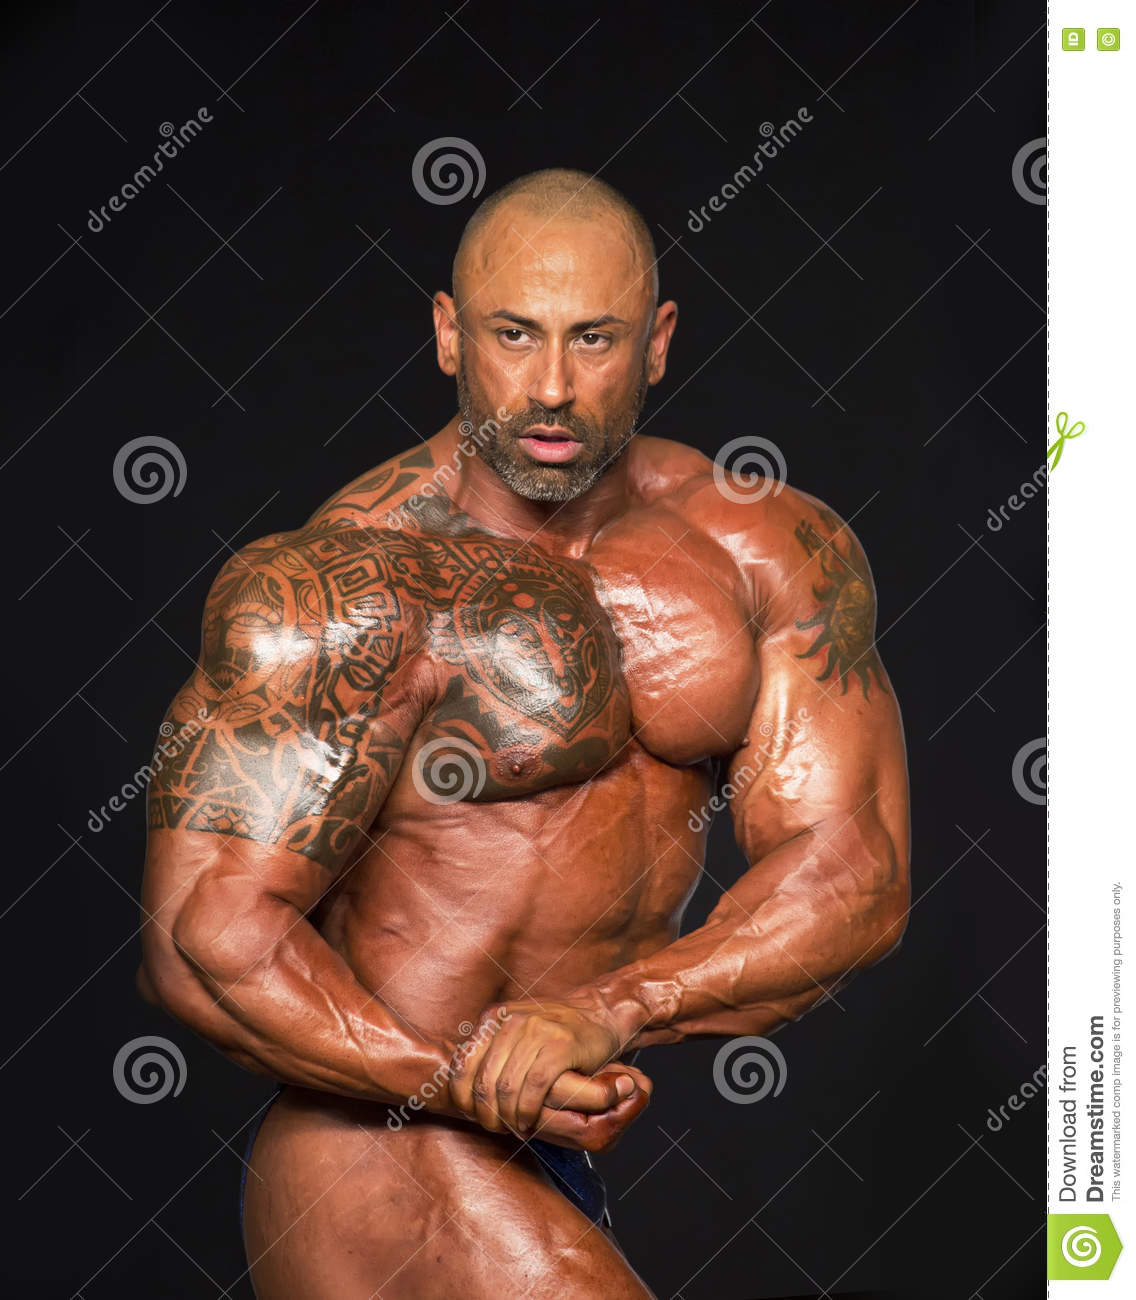 Tattoos and massive muscles editorial photo image 75829716 for Cotto new tattoo